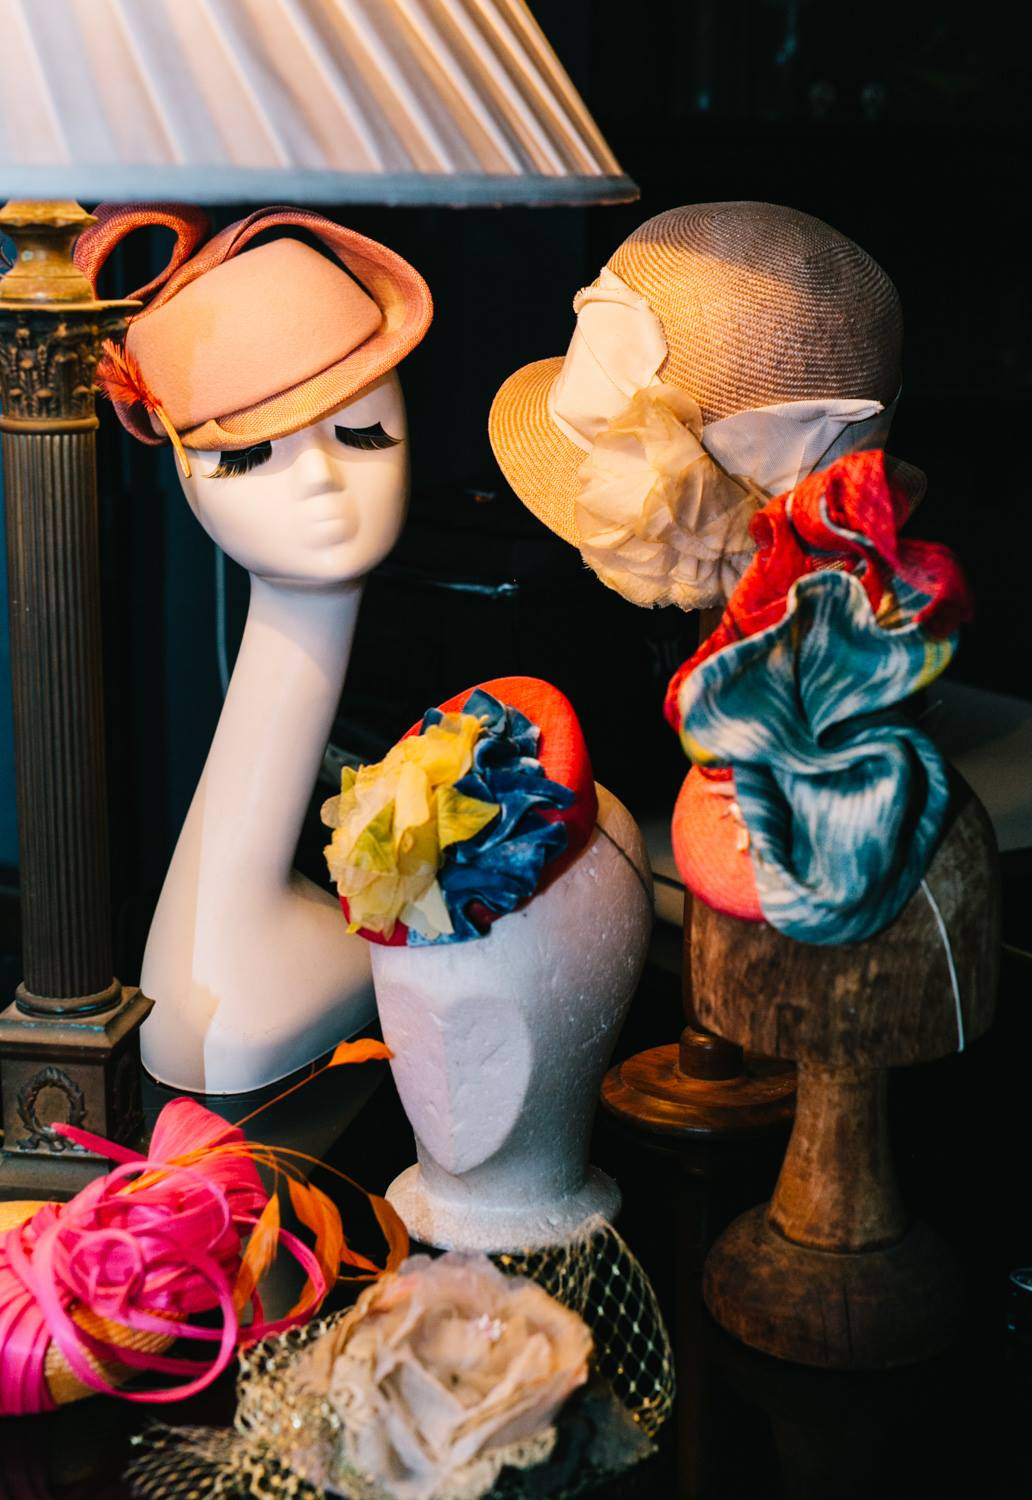 Some of the hats made by Louise Trevitt